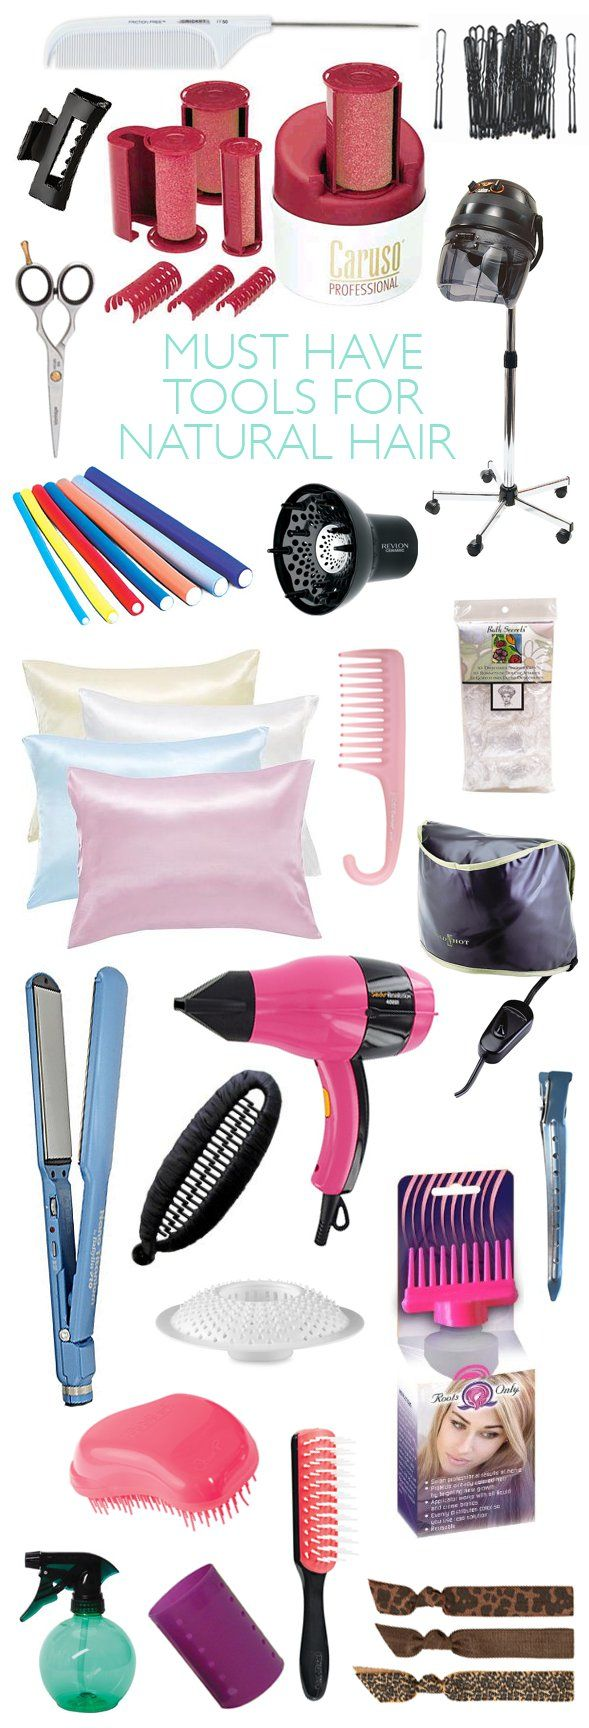 Must Have Tools For Natural Hair Care.